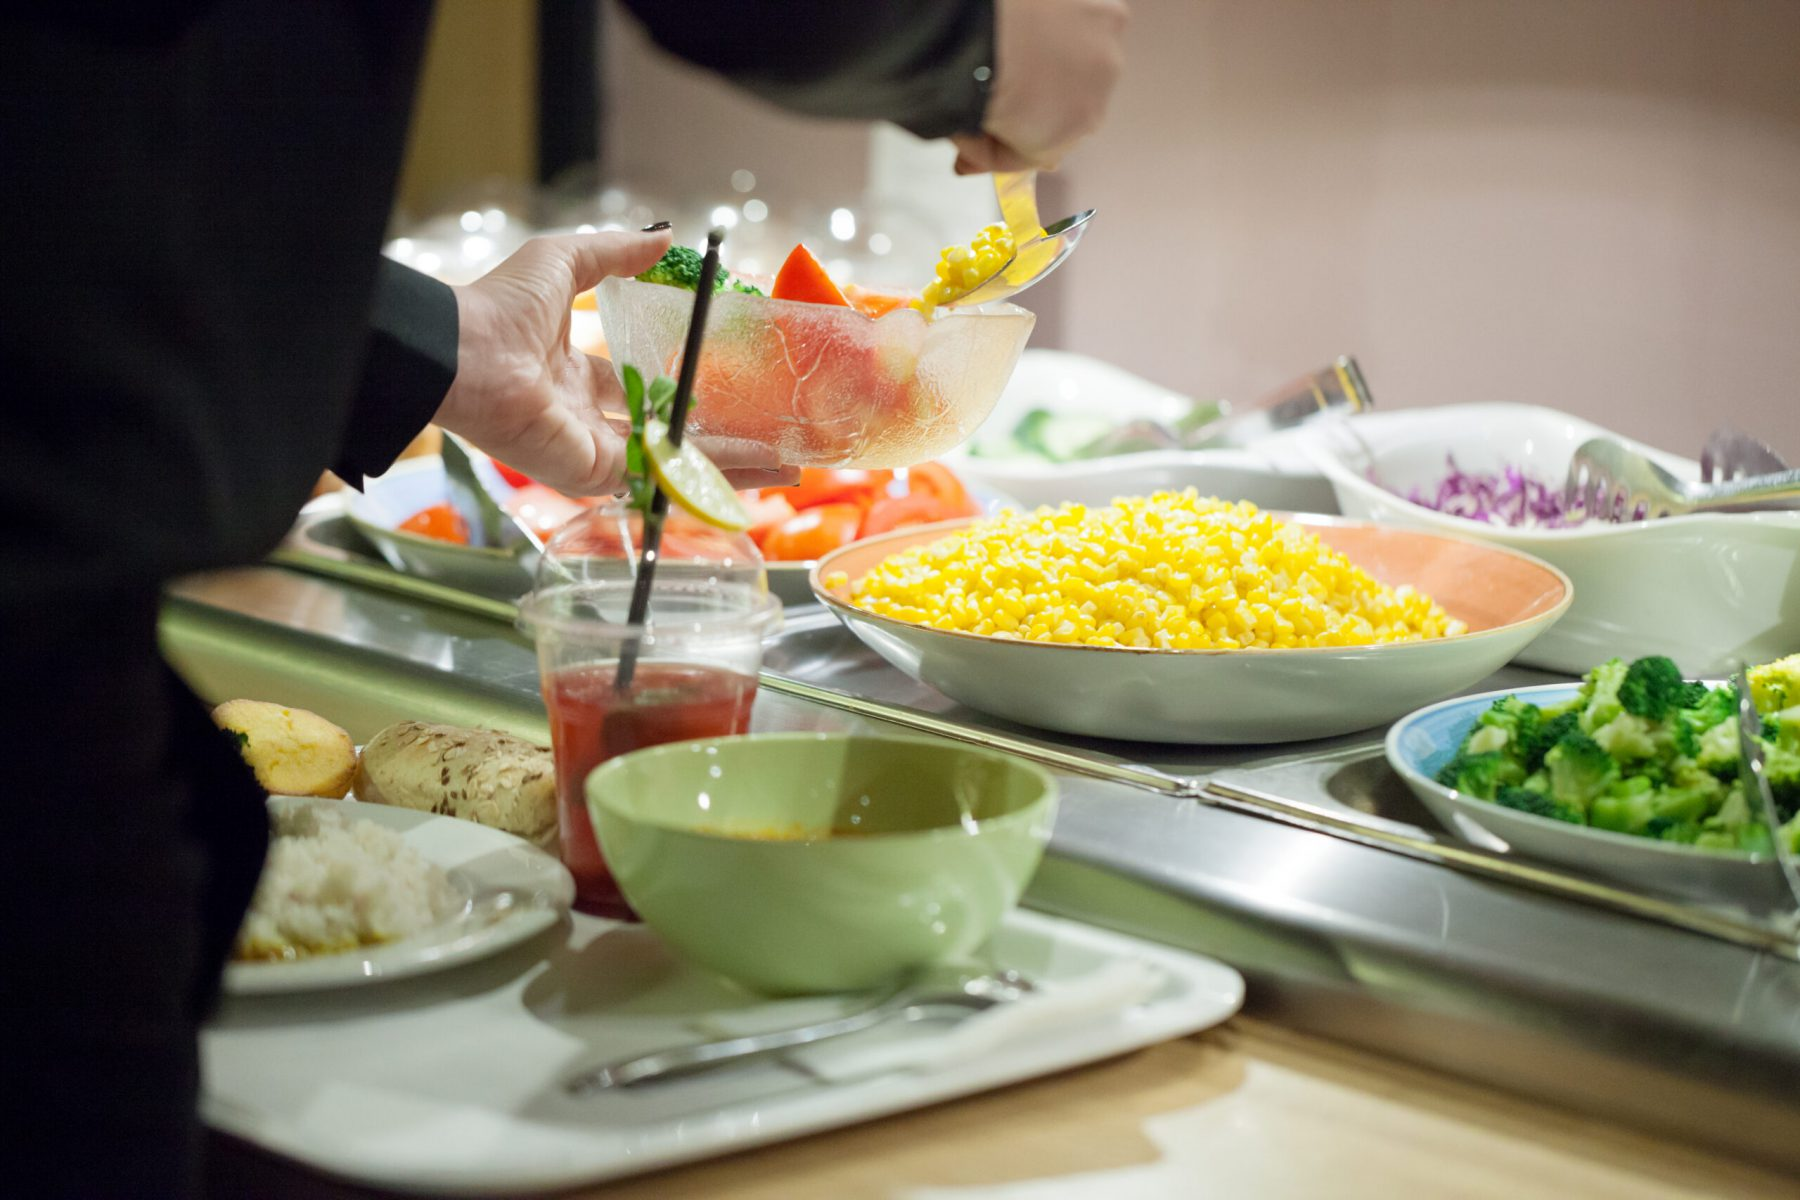 Salads at buffet table